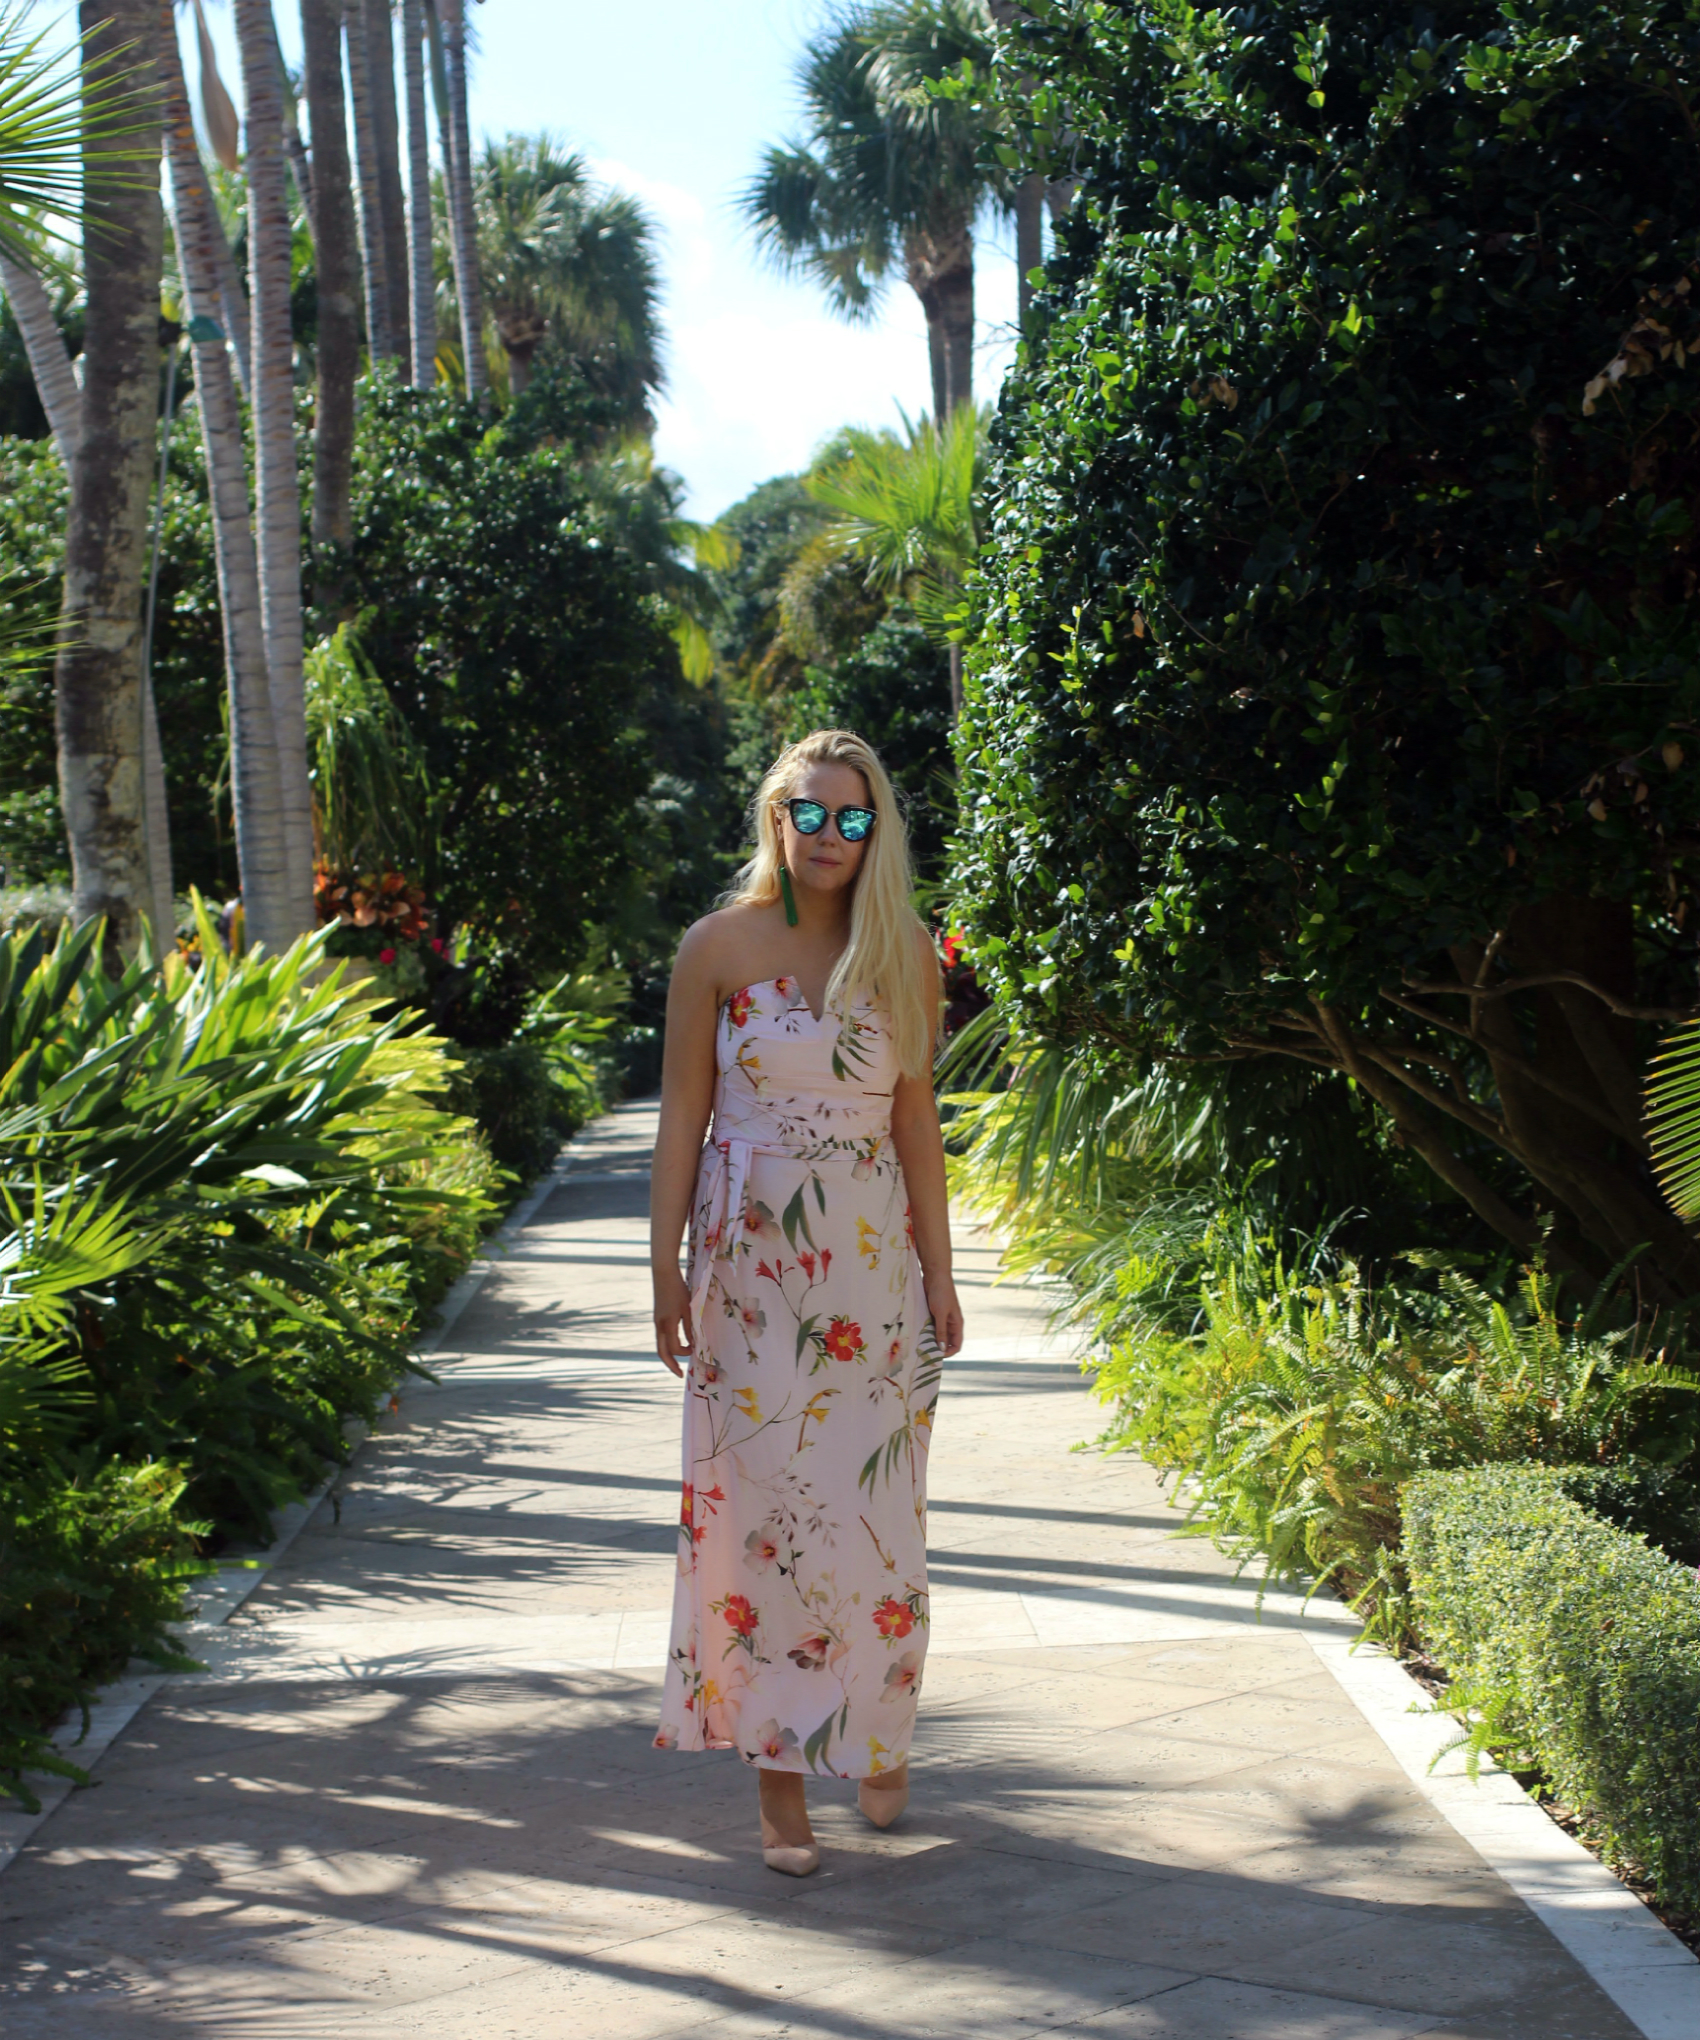 strolling the gardens at the breakers palm beach